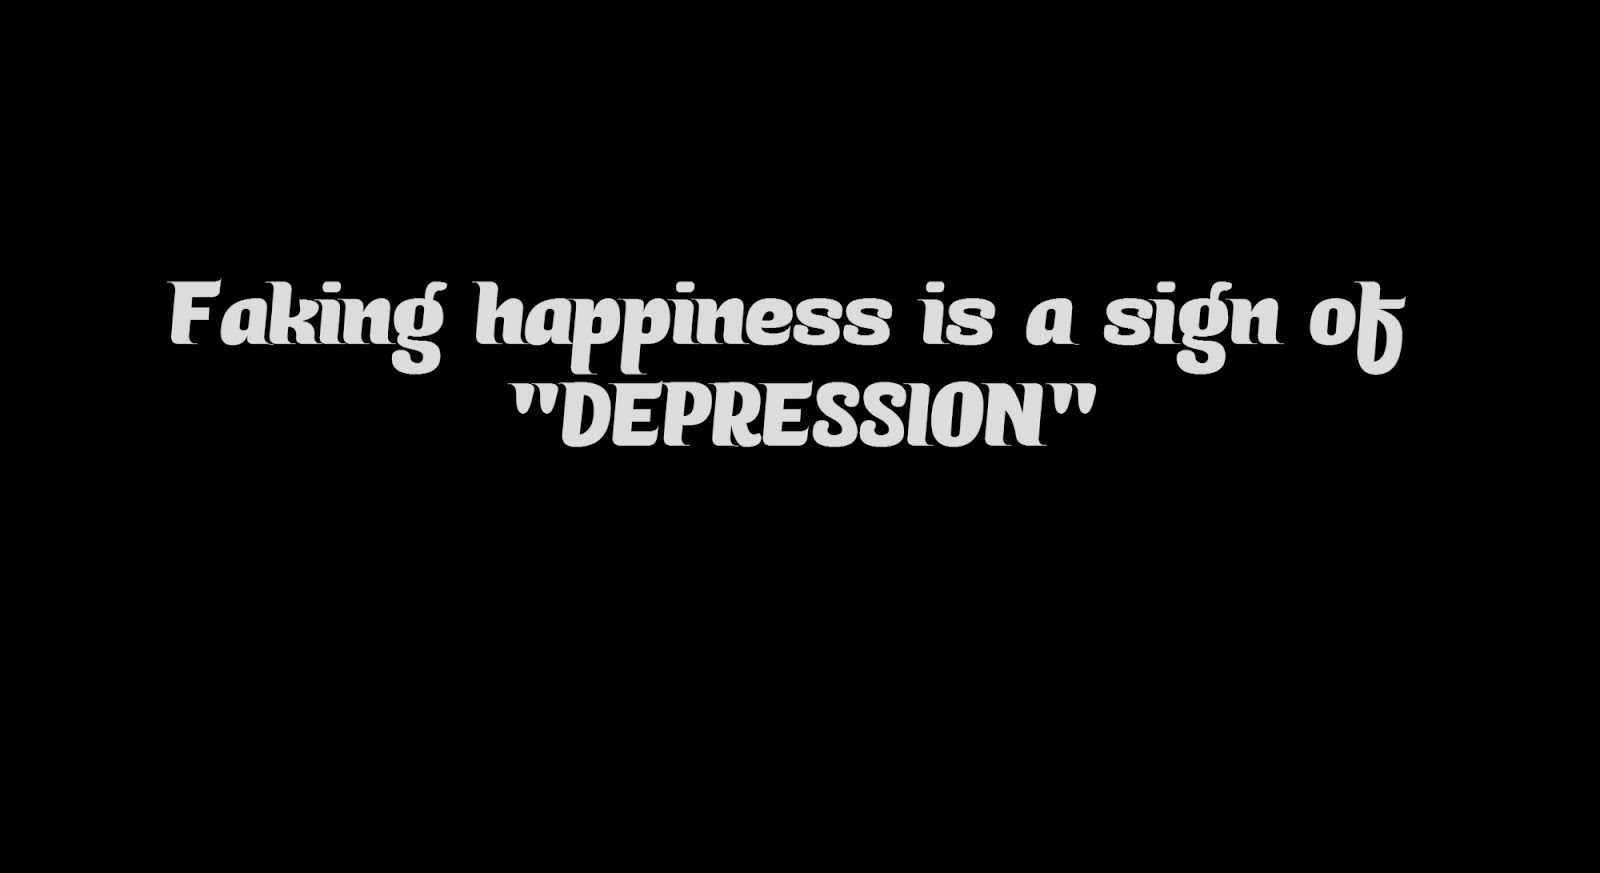 Faking happiness is a sign of depression